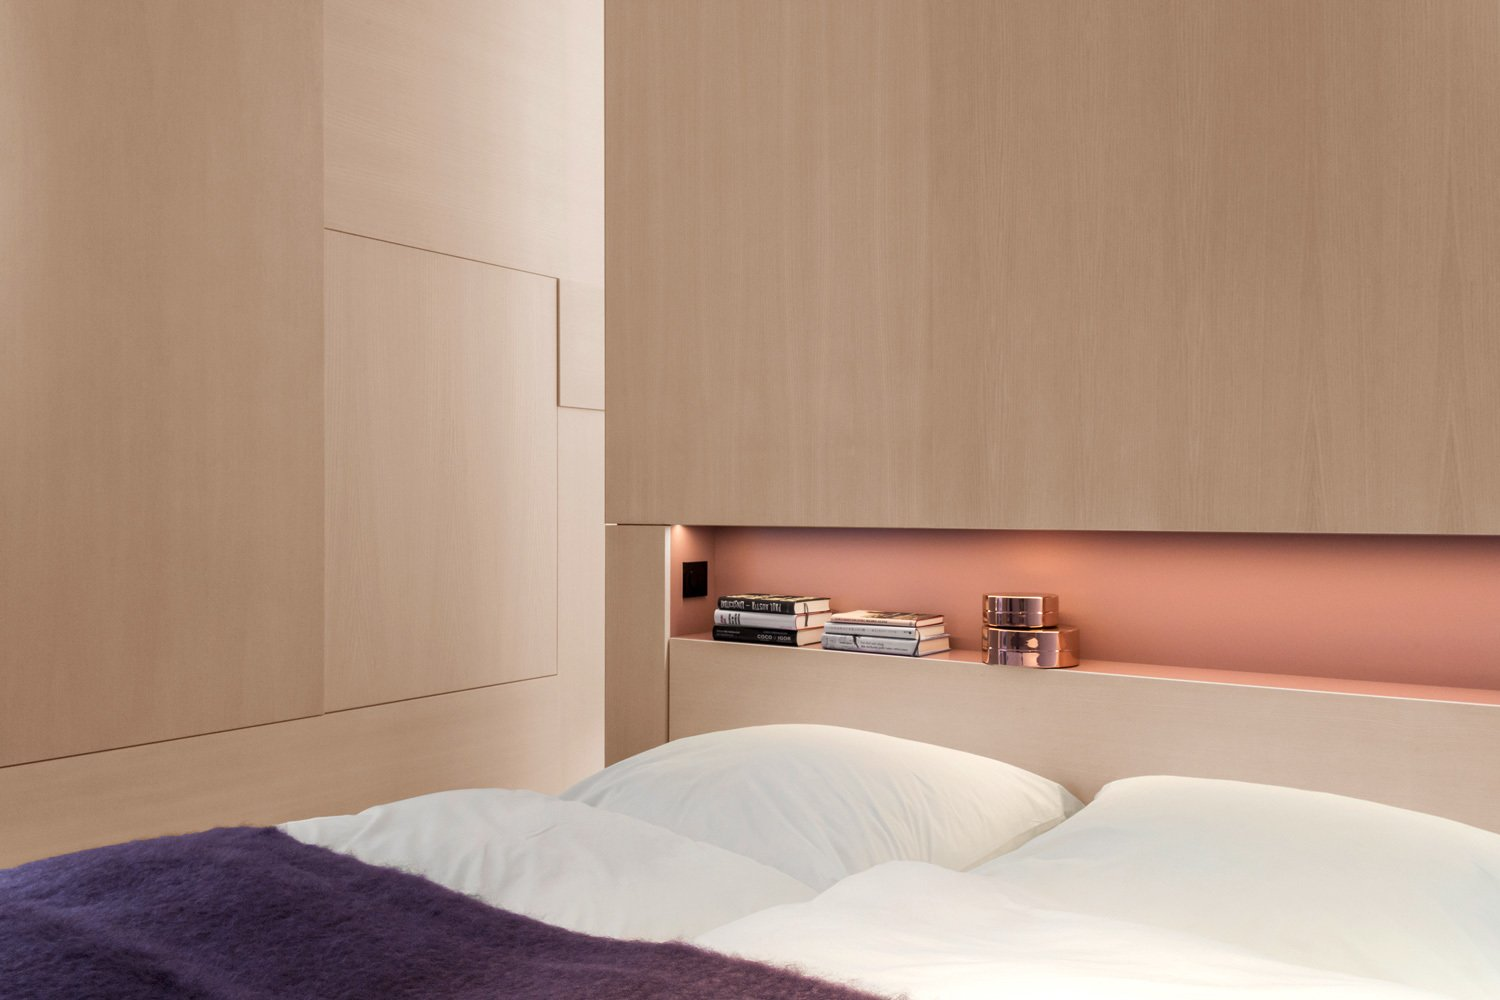 An elegant built-in shelf lies above the bed. Bedrooms by Dwell